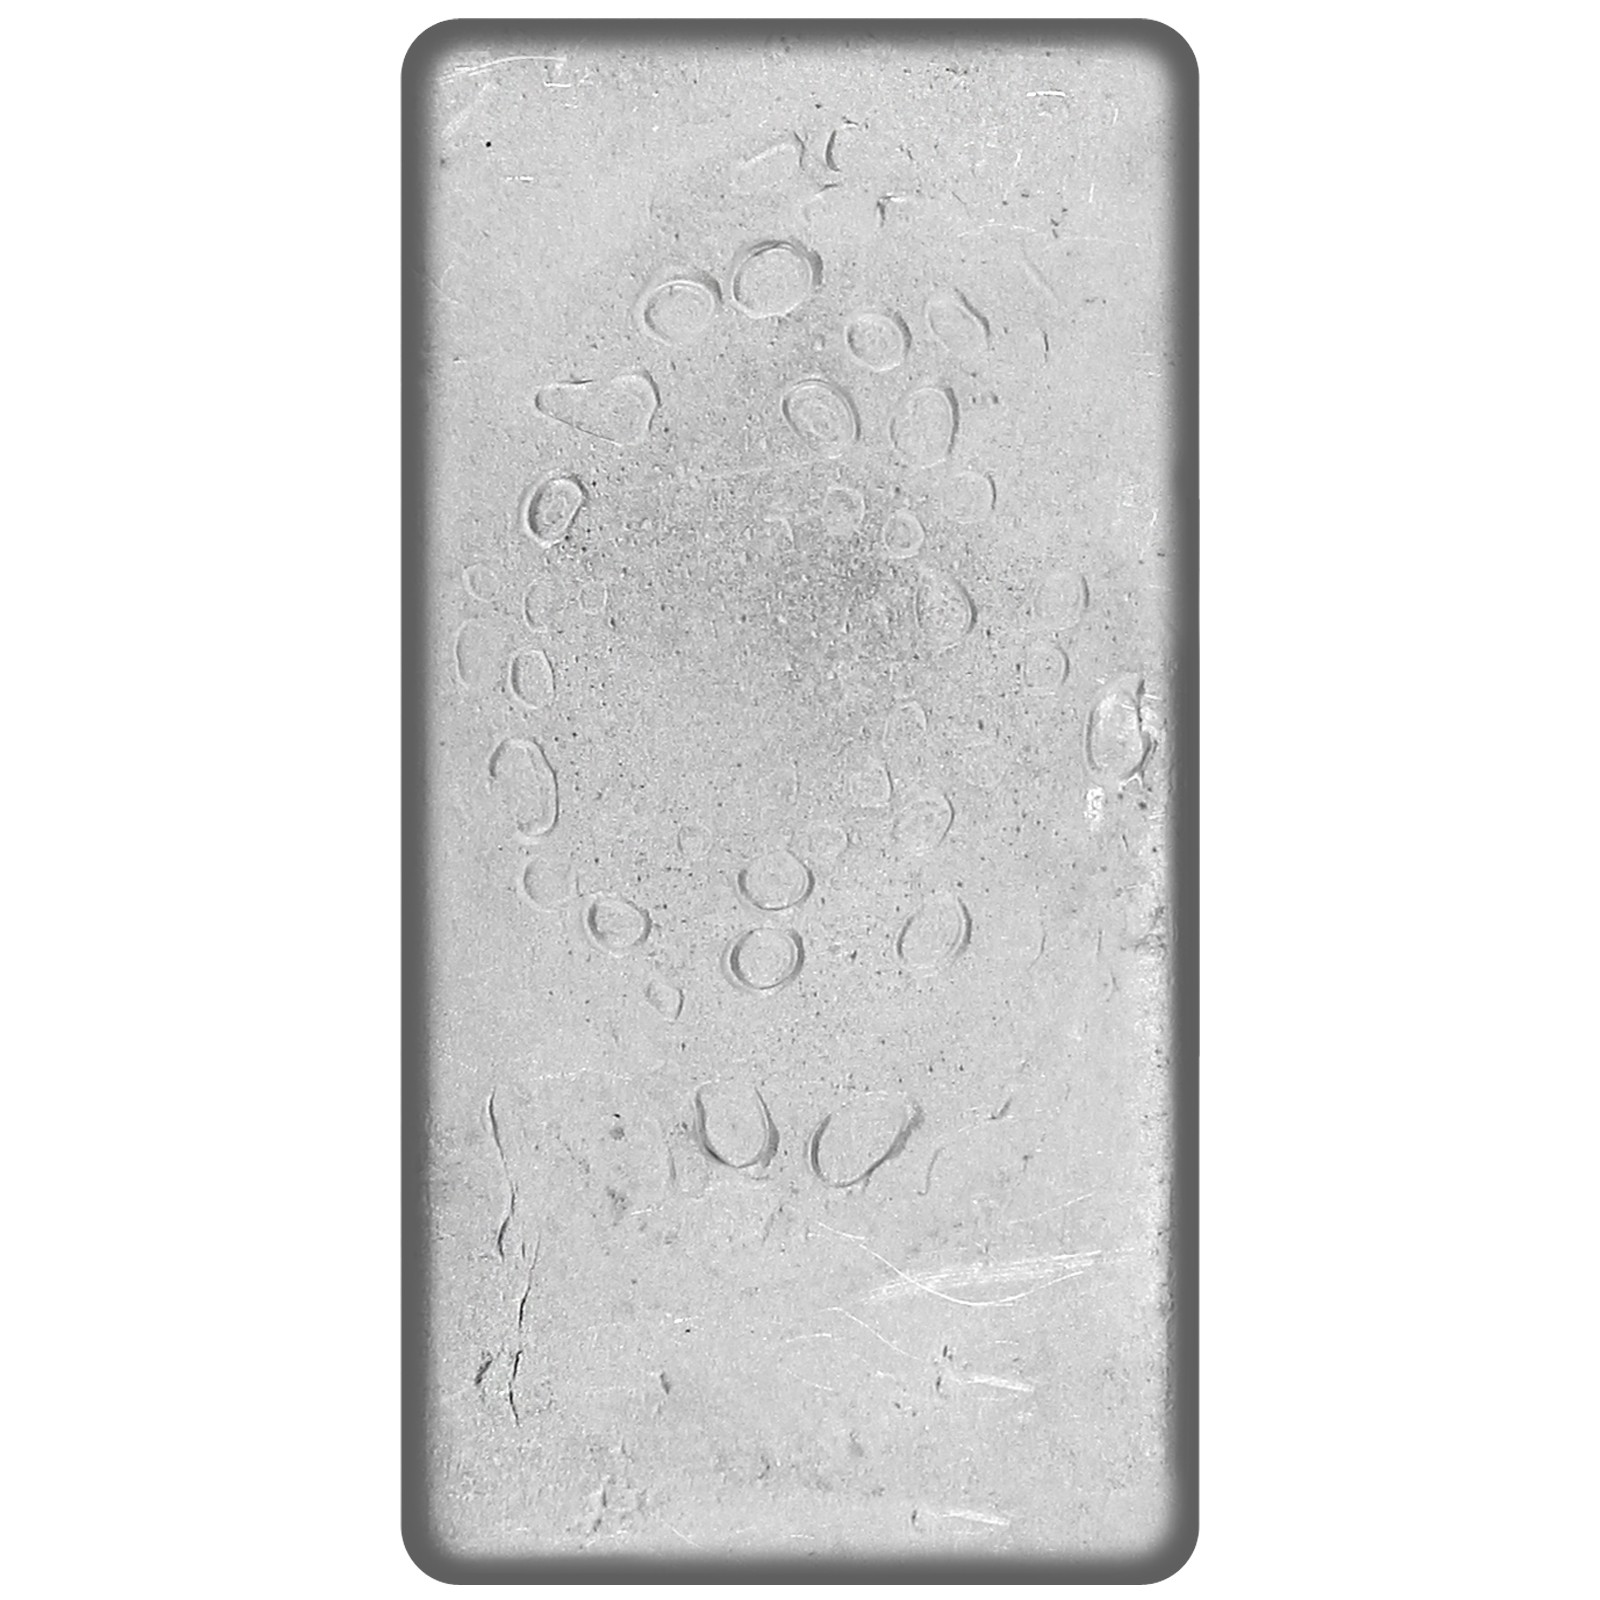 Silvertowne Hand Poured 50oz 999 Fine Silver Bar Ebay